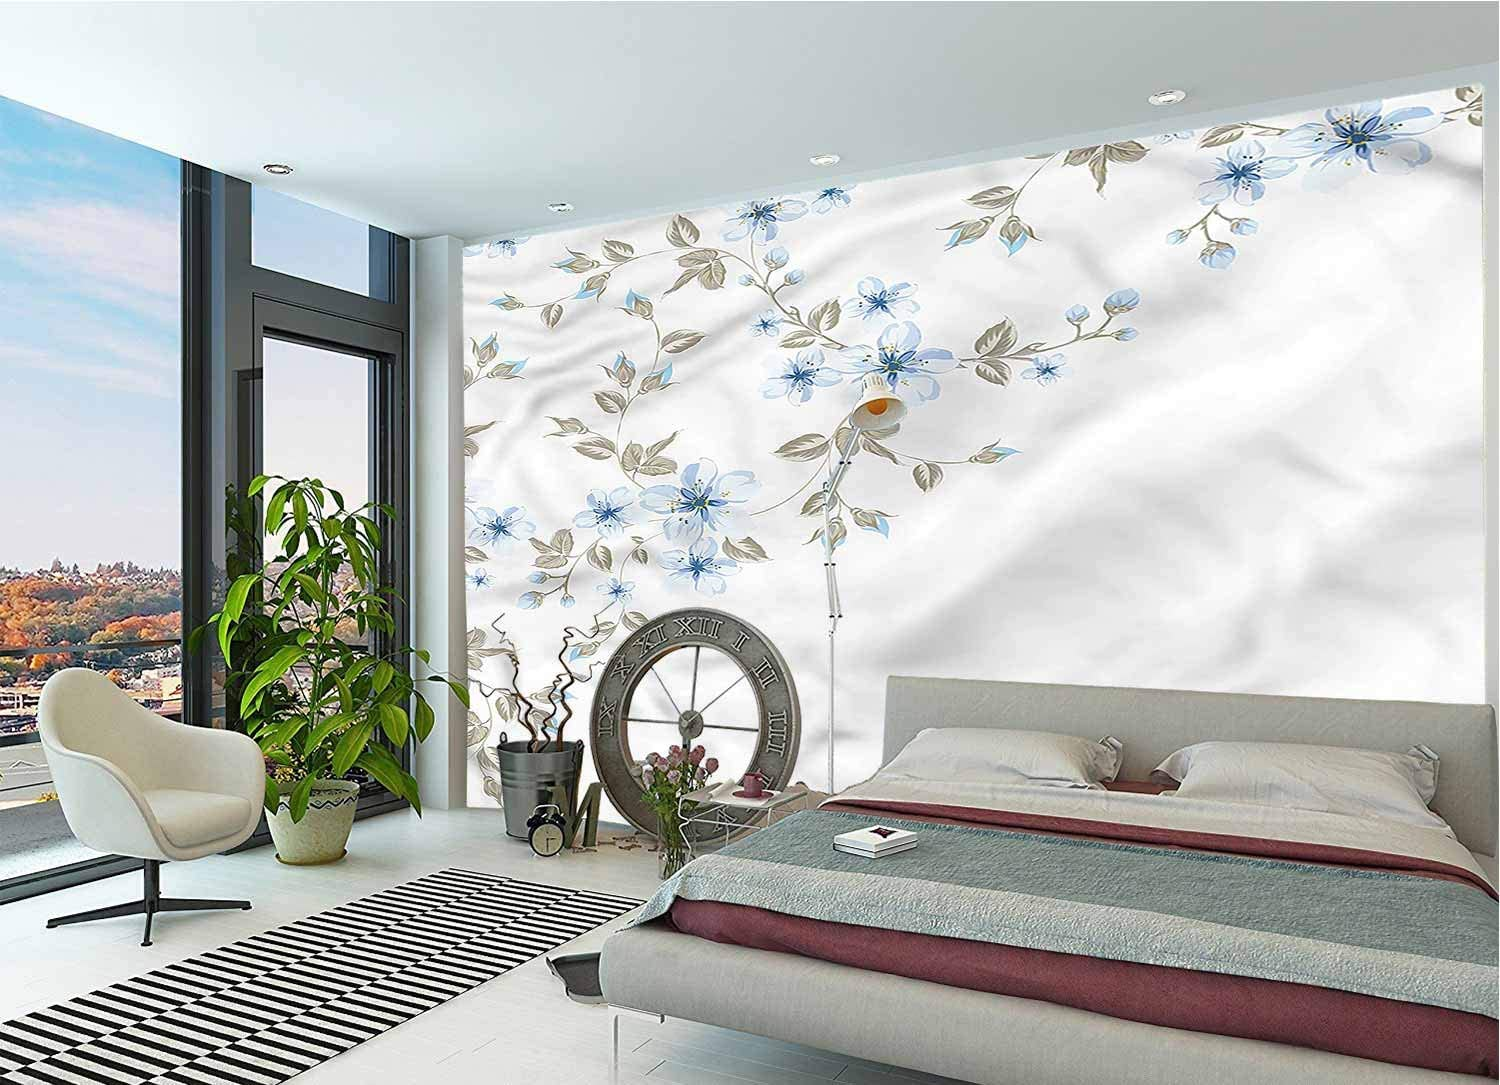 LCGGDB Pale Blue Large Wall Mural,Japanese Sakura Cherry Removable Large Sticker Foil Wall Decor for Office Kids Bedroom Nursery Family Decor-118x83 Inch